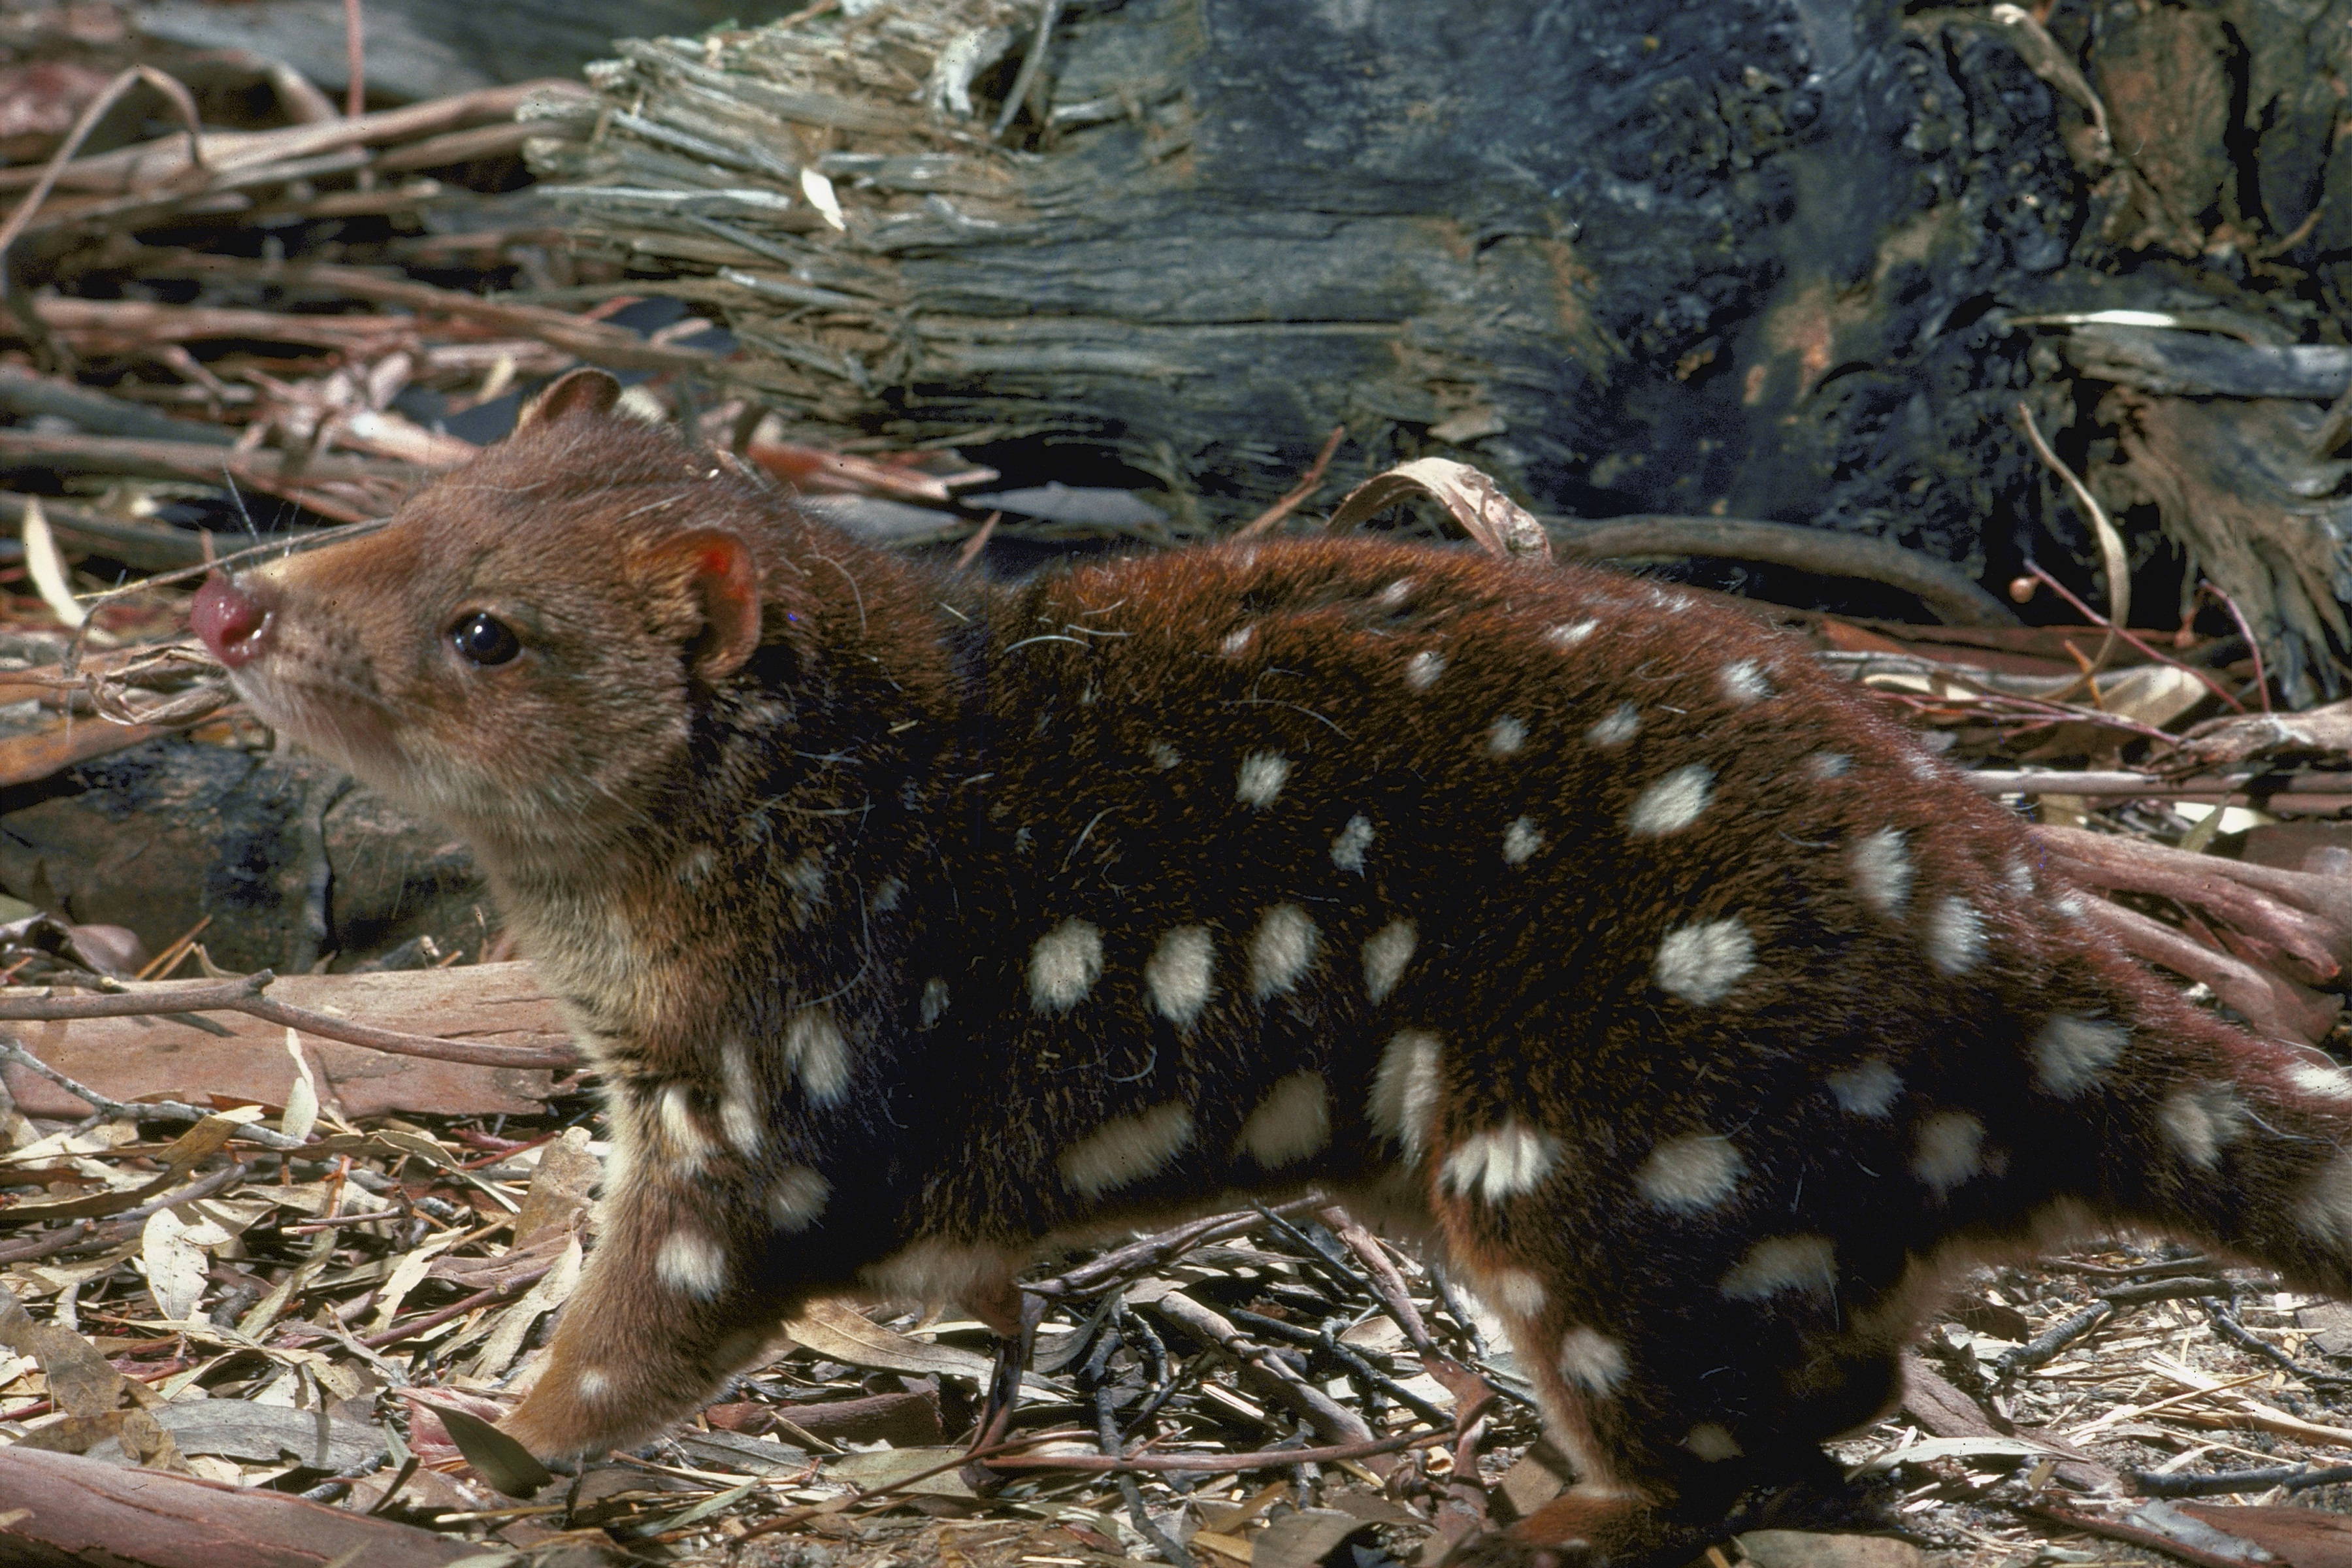 A side view of a quoll